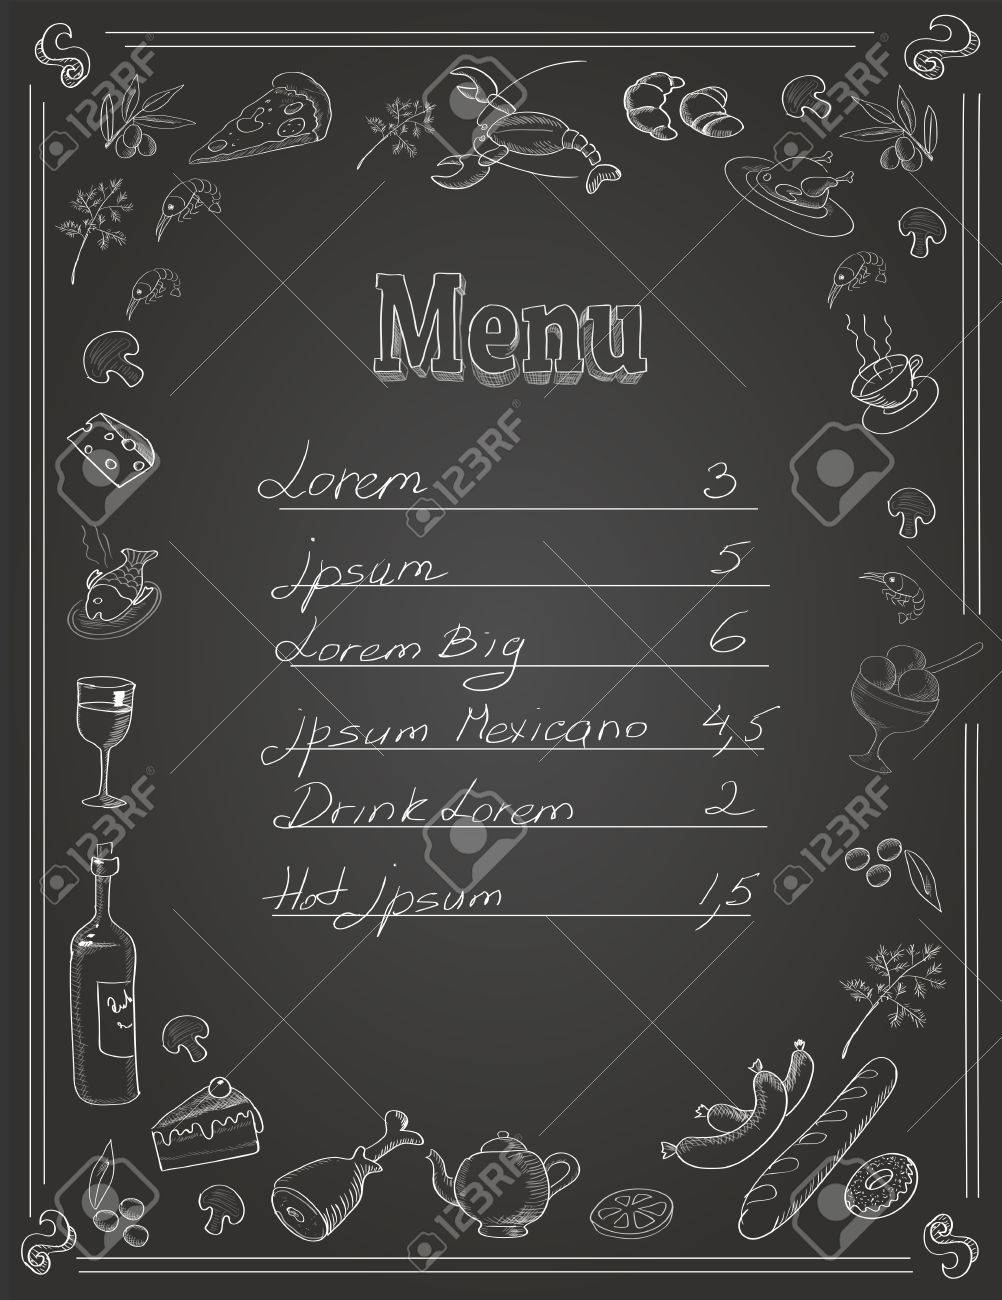 restaurant food menu design with chalkboard background and place